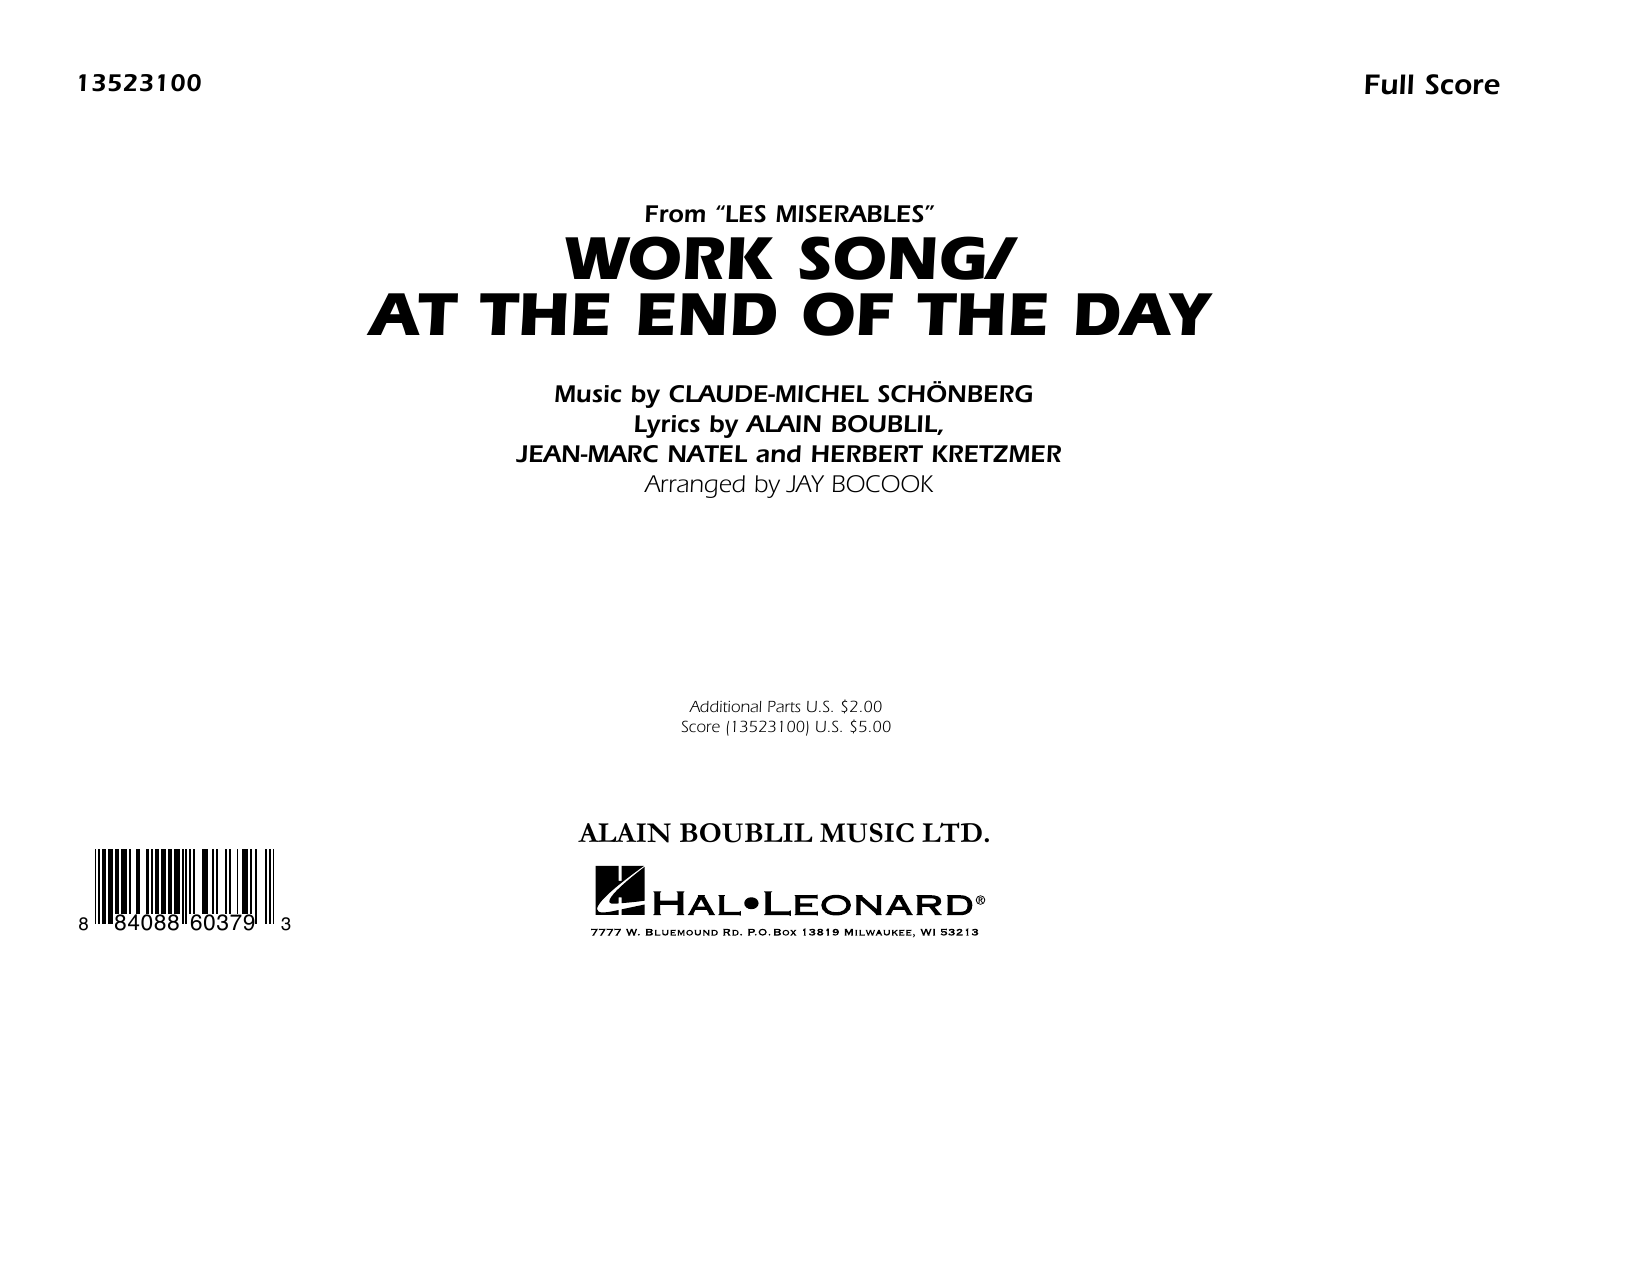 Work Song/At the End of the Day (Les Misérables) (arr. Jay Bocook) - Conductor Score (Full Score) (Marching Band)